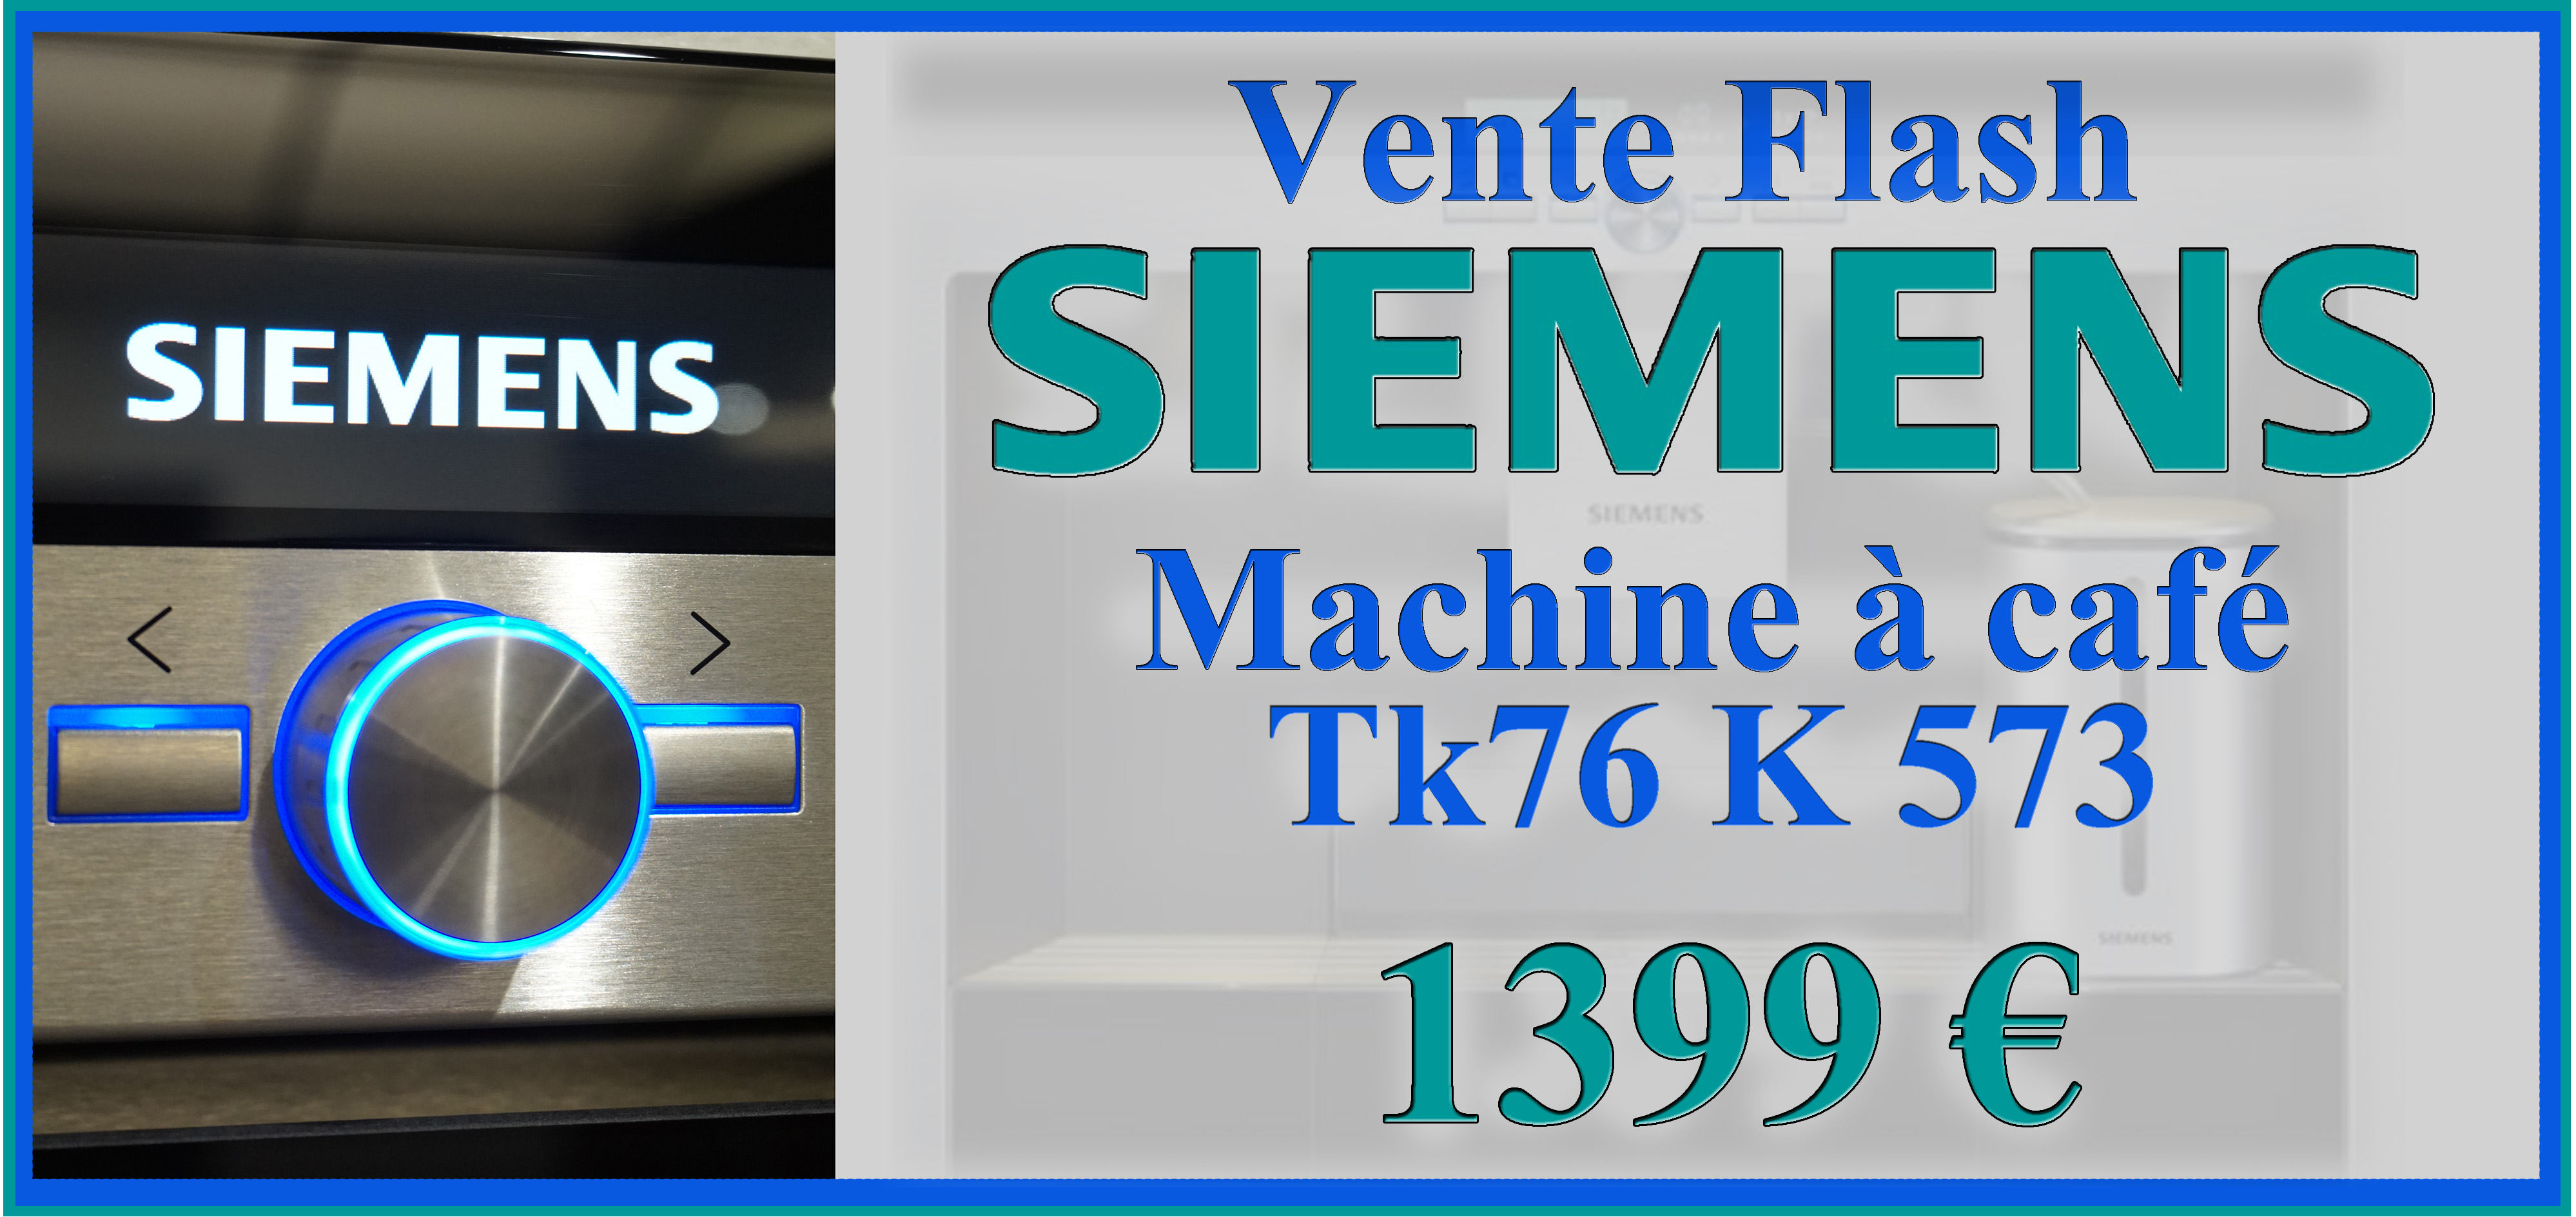 vente-flash-siemens-cafe-1399.jpg